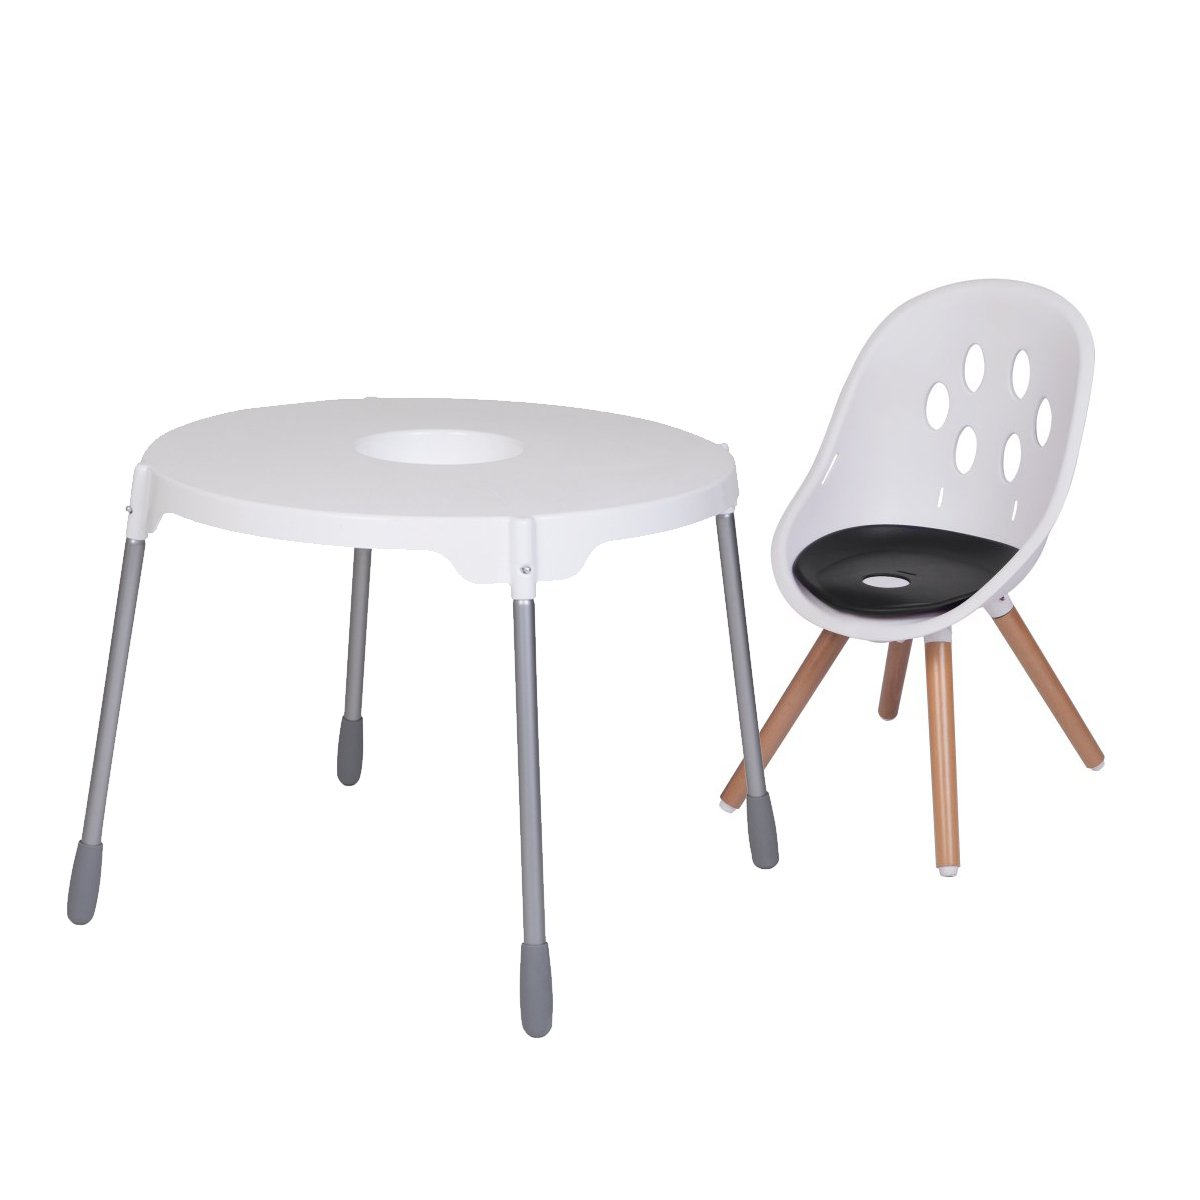 https://cdn.accentuate.io/4720377102413/19466203824322/phil_and_teds_poppy_wood_leg_high_chair_to_my_chair_dual_modes_1_combo-v1630984594791.jpg?1200x1200